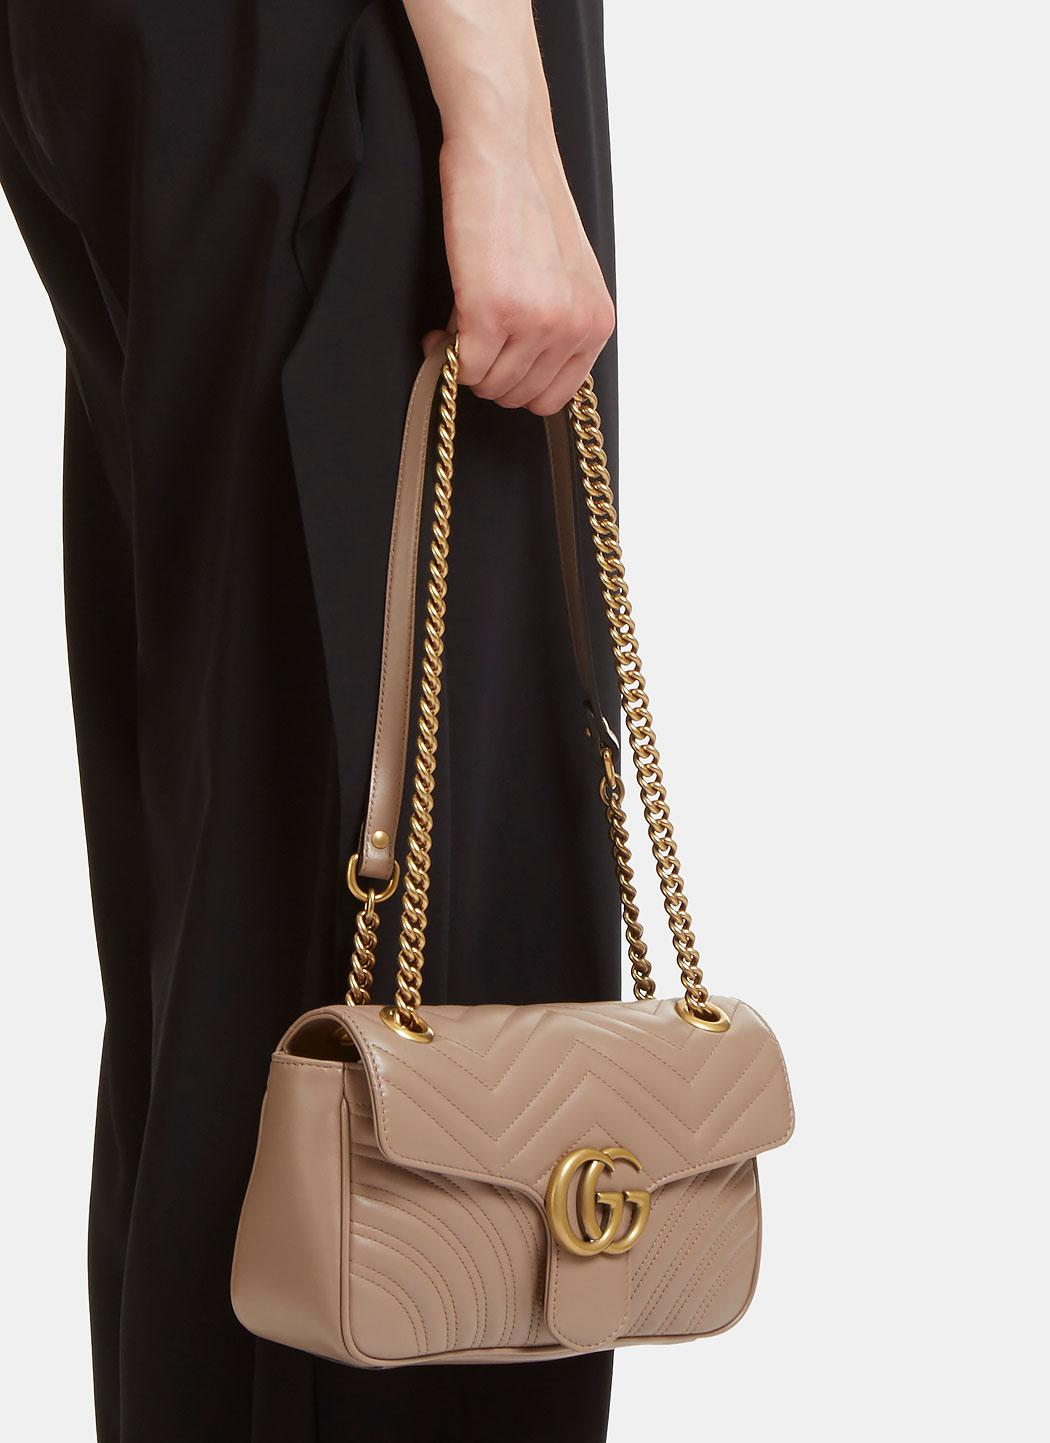 46dbec230b3a Gucci Gg Marmont Matelassé Small Chain Shoulder Bag In Taupe in ...